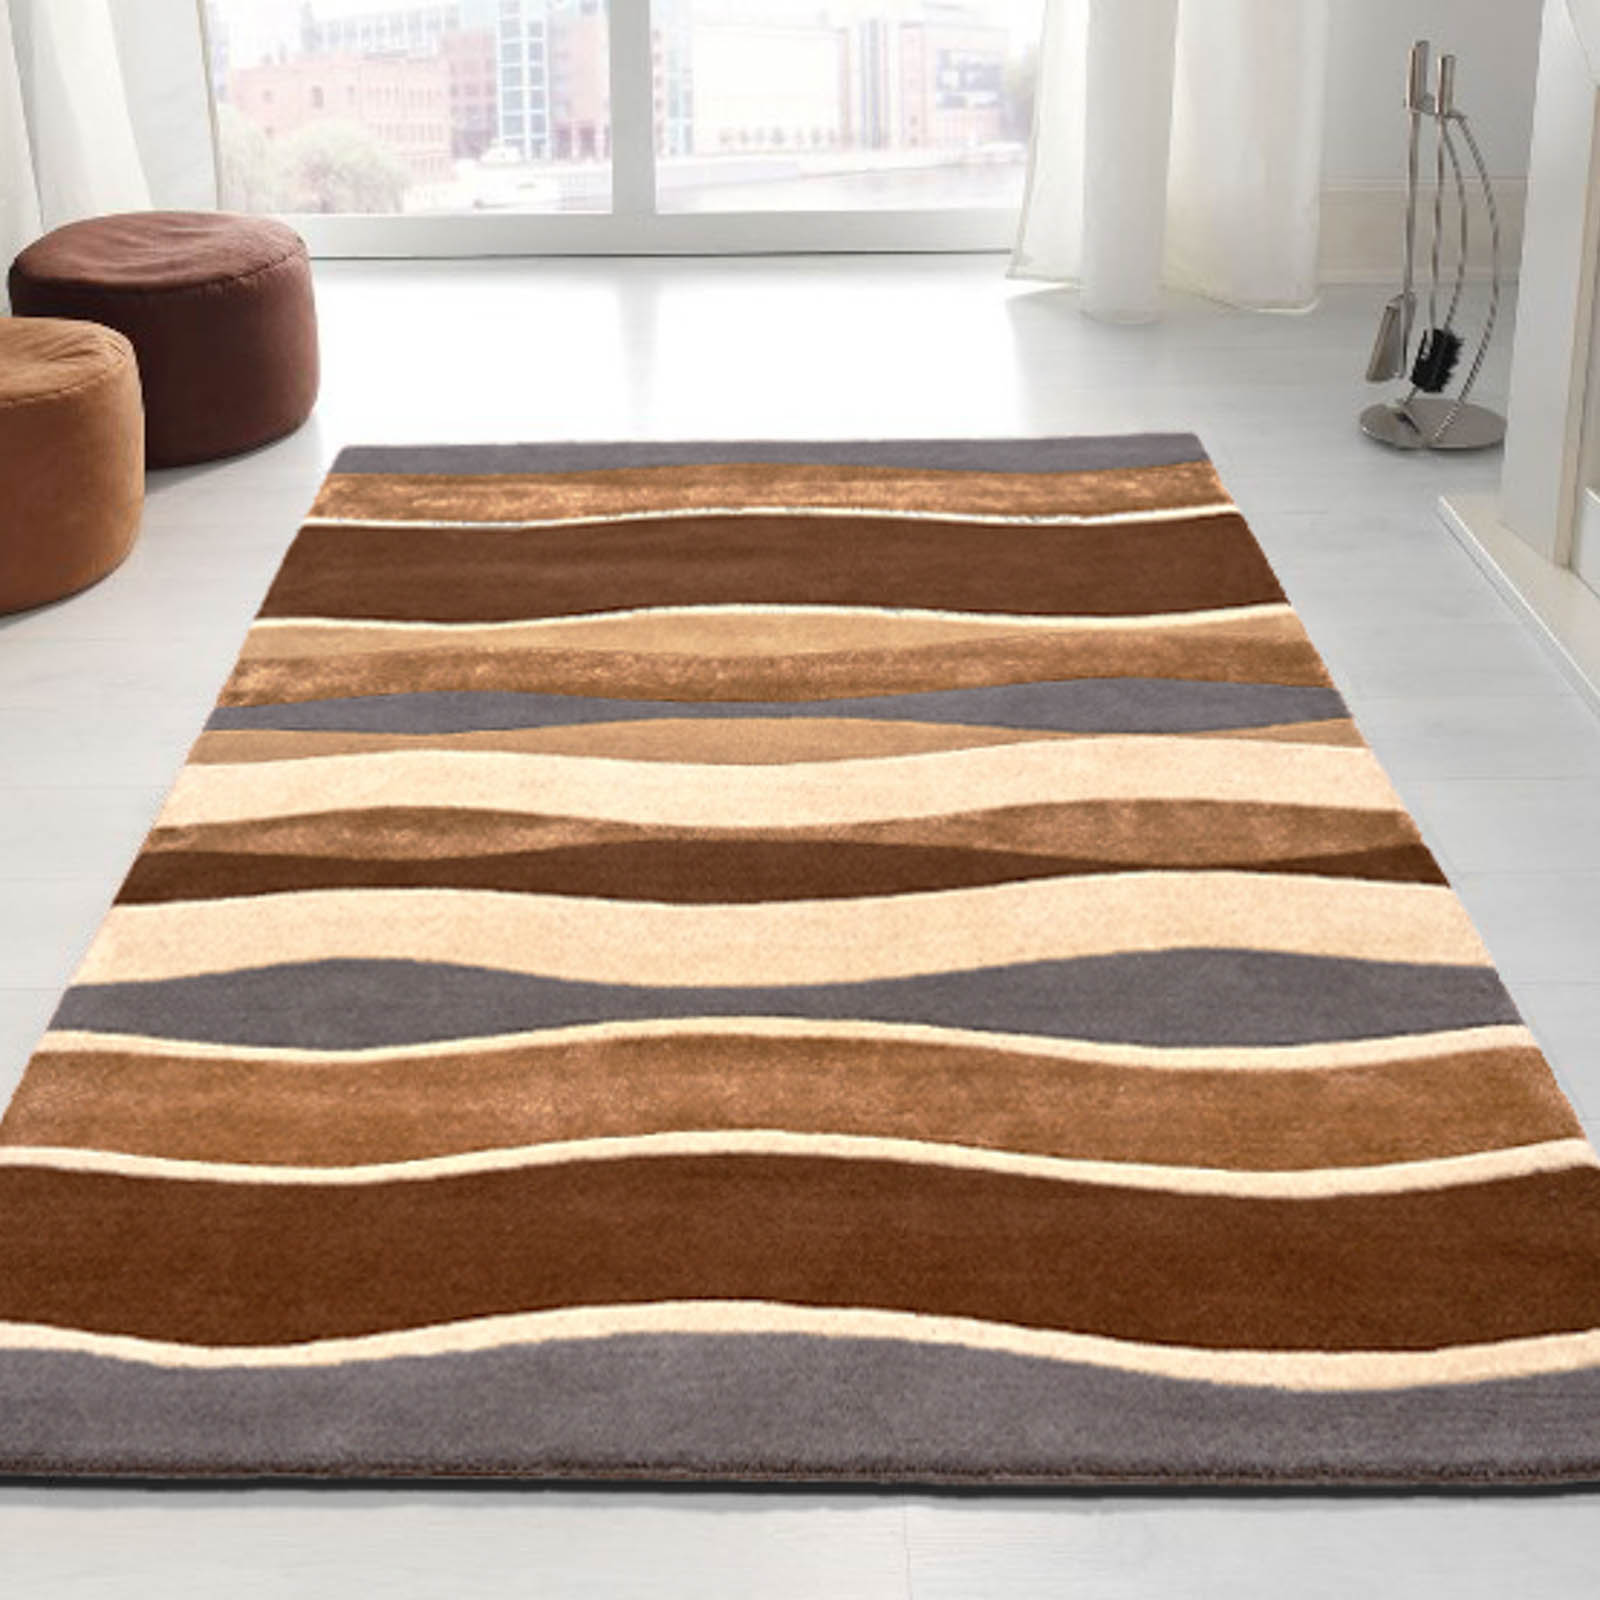 Impression Rugs 702 in Brown and Grey